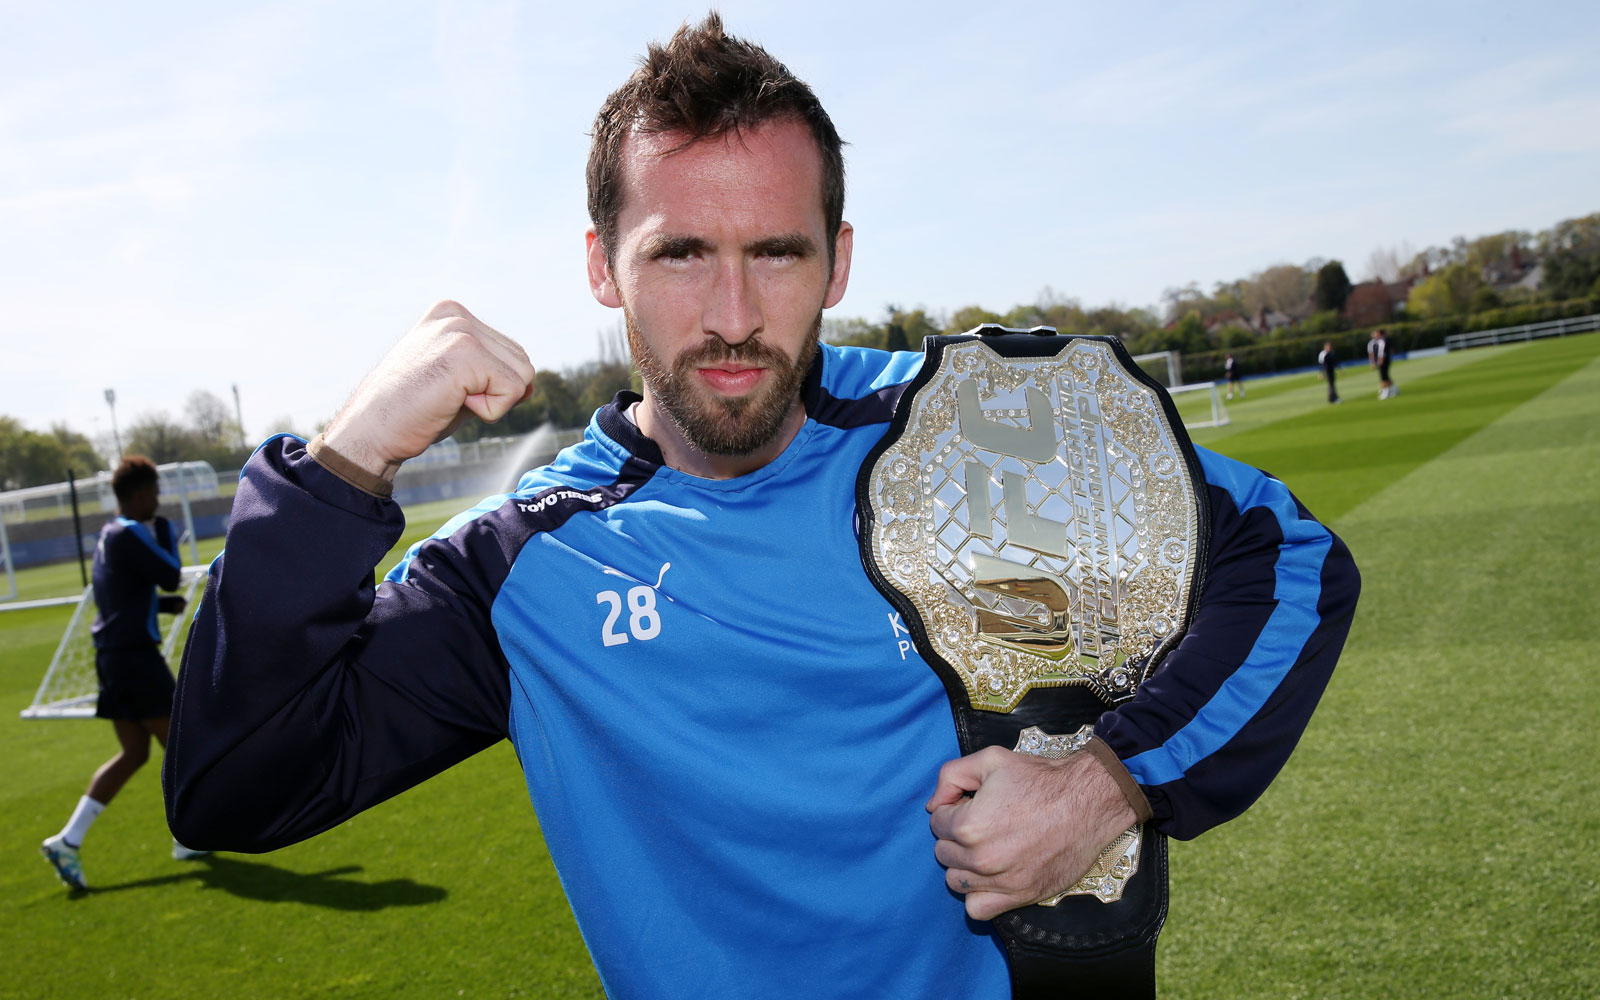 Leicester's Christian Fuchs poses with the UFC title belt as part of Leicester's title celebrations